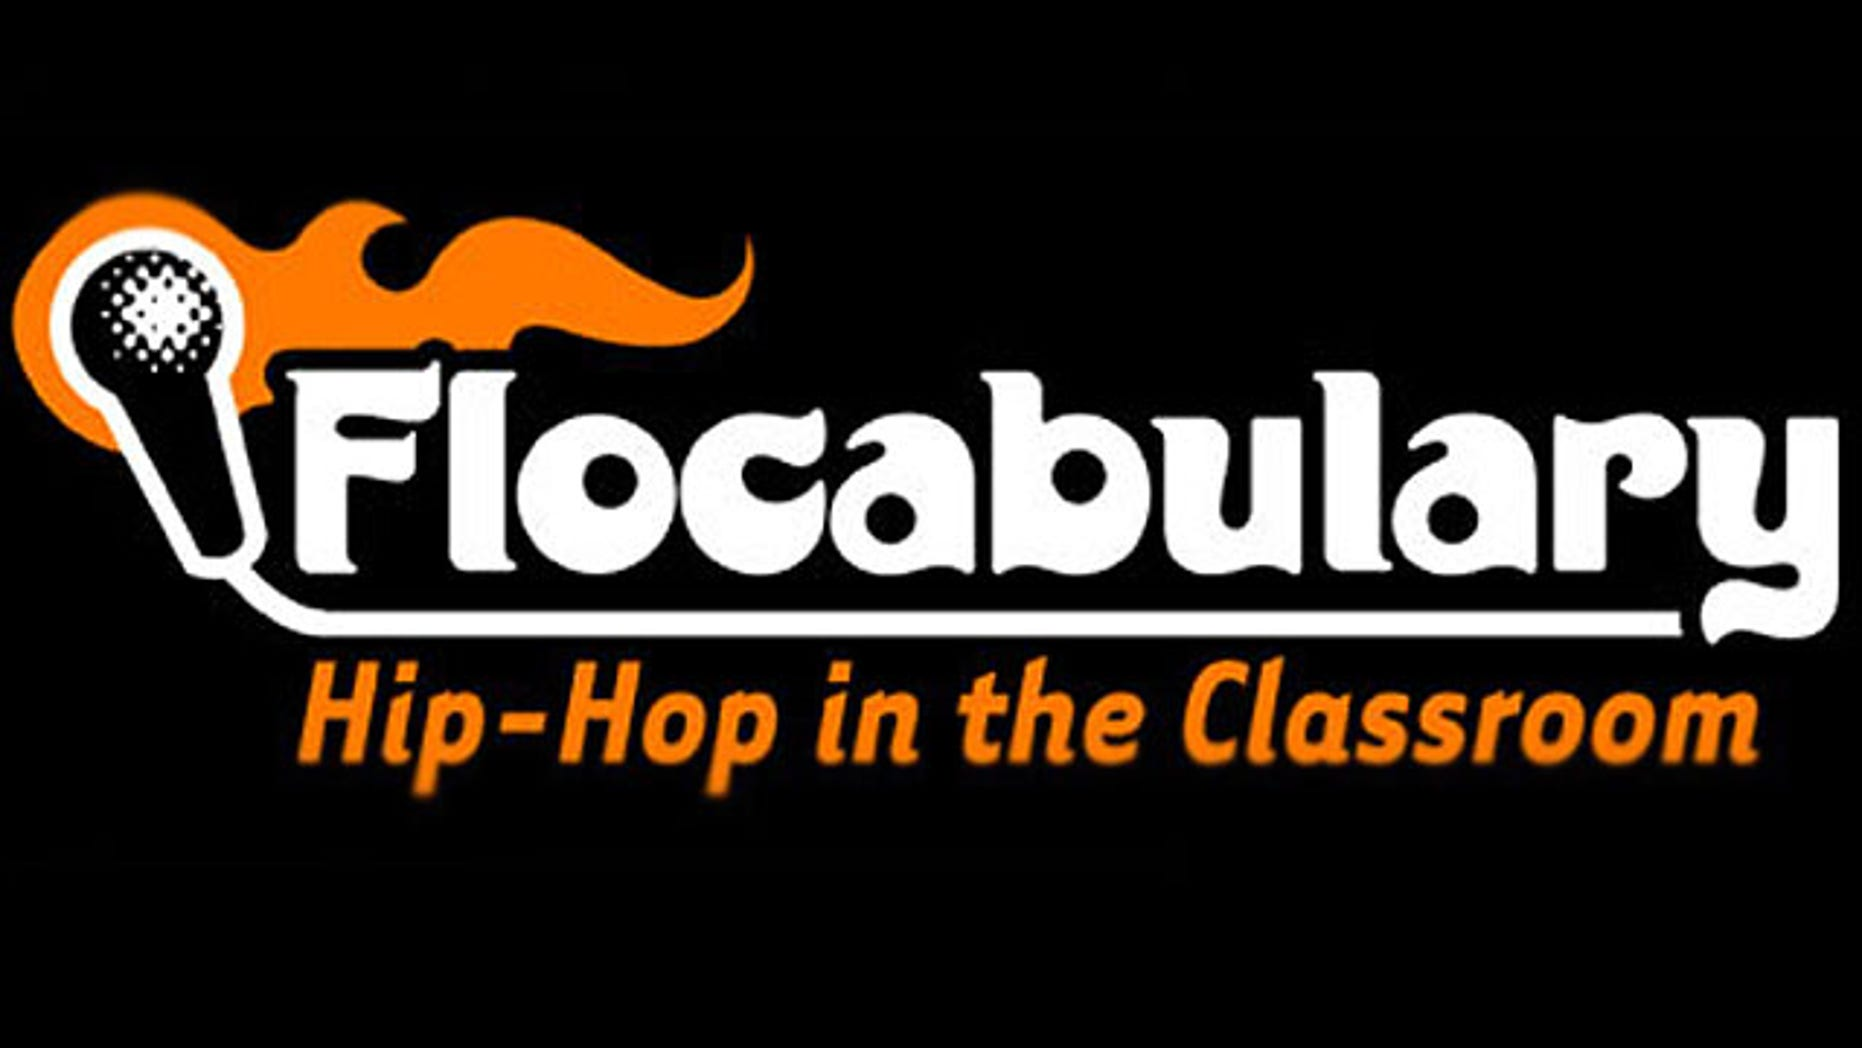 The program known as Flocabulary is an educational tool that uses rap and hip-hop music to help students learn.